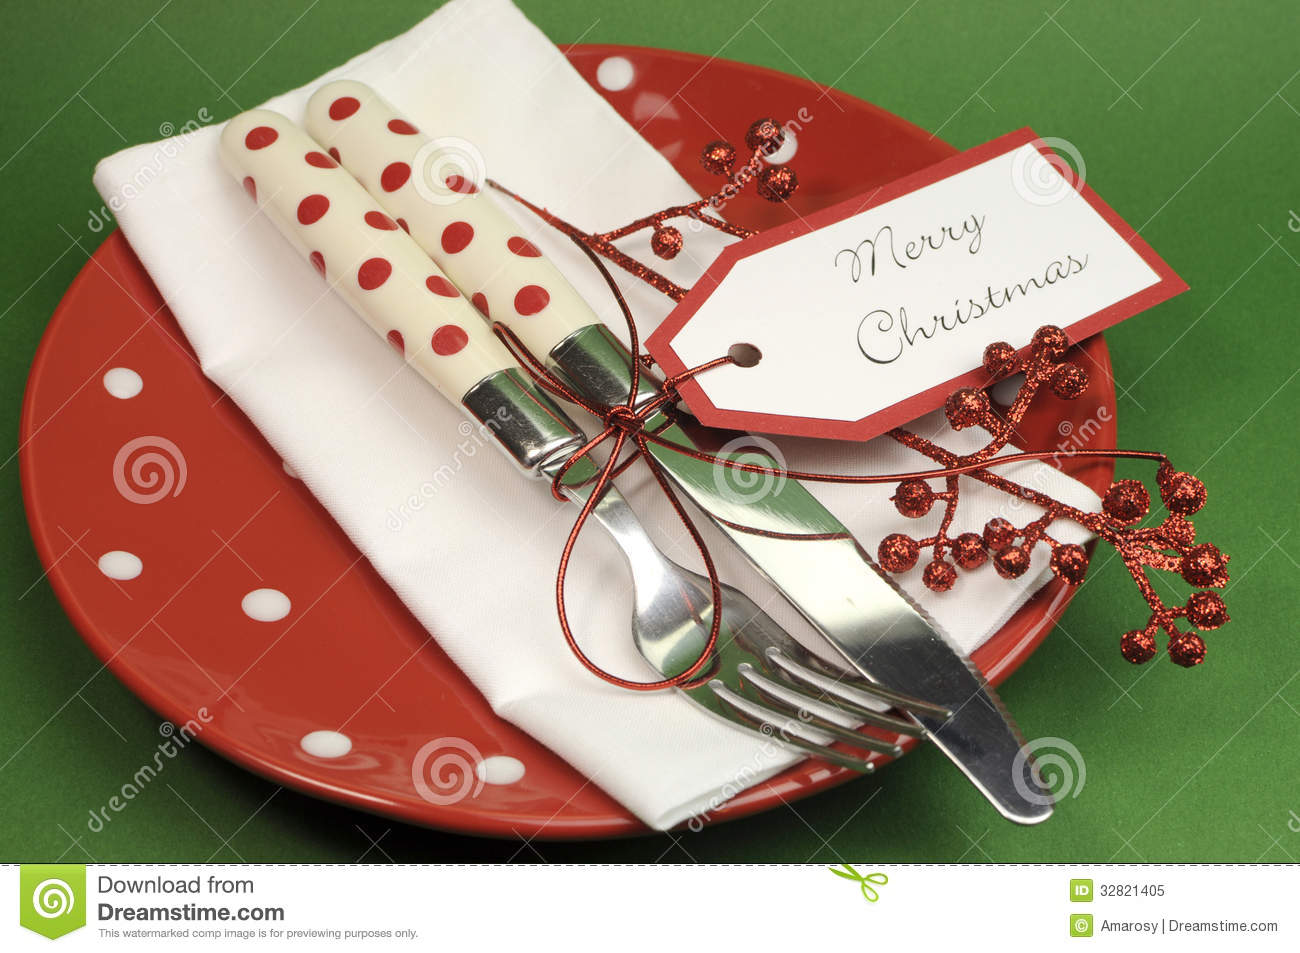 ... red and green Merry Christmas dinner or lunch table place setting